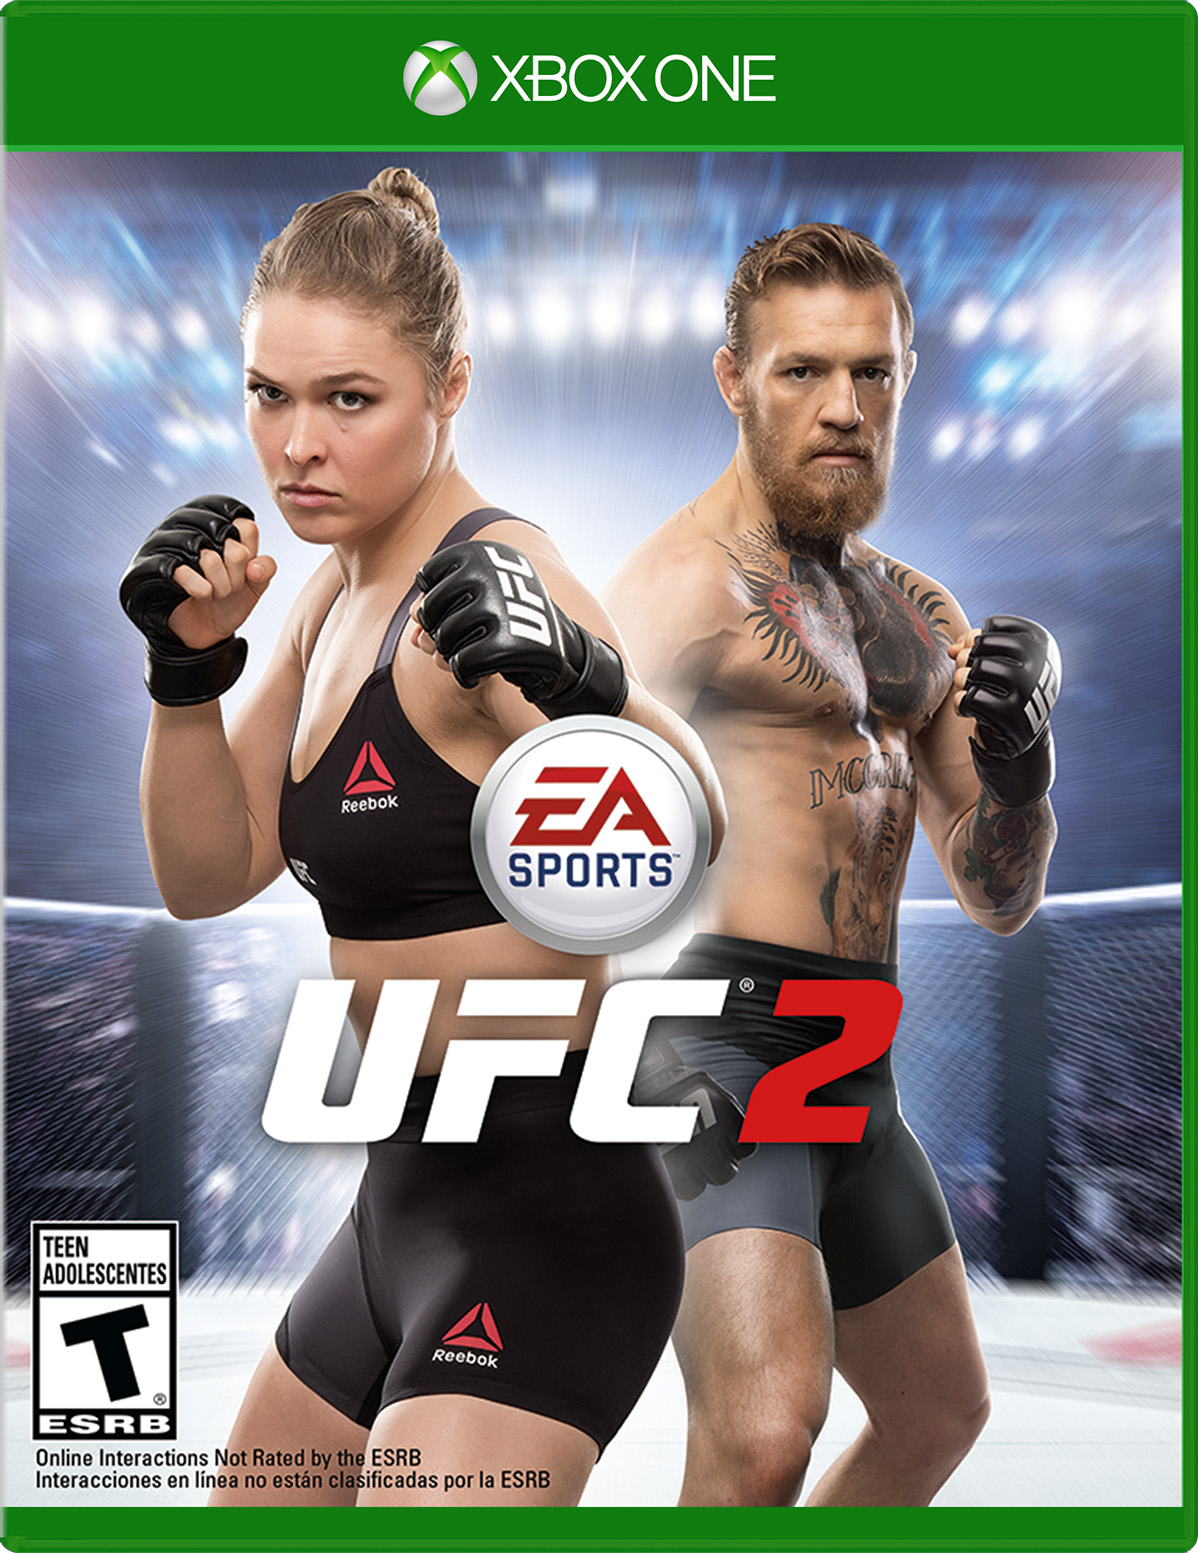 EA Sports UFC 2 Deluxe Edition for Xbox One Deal